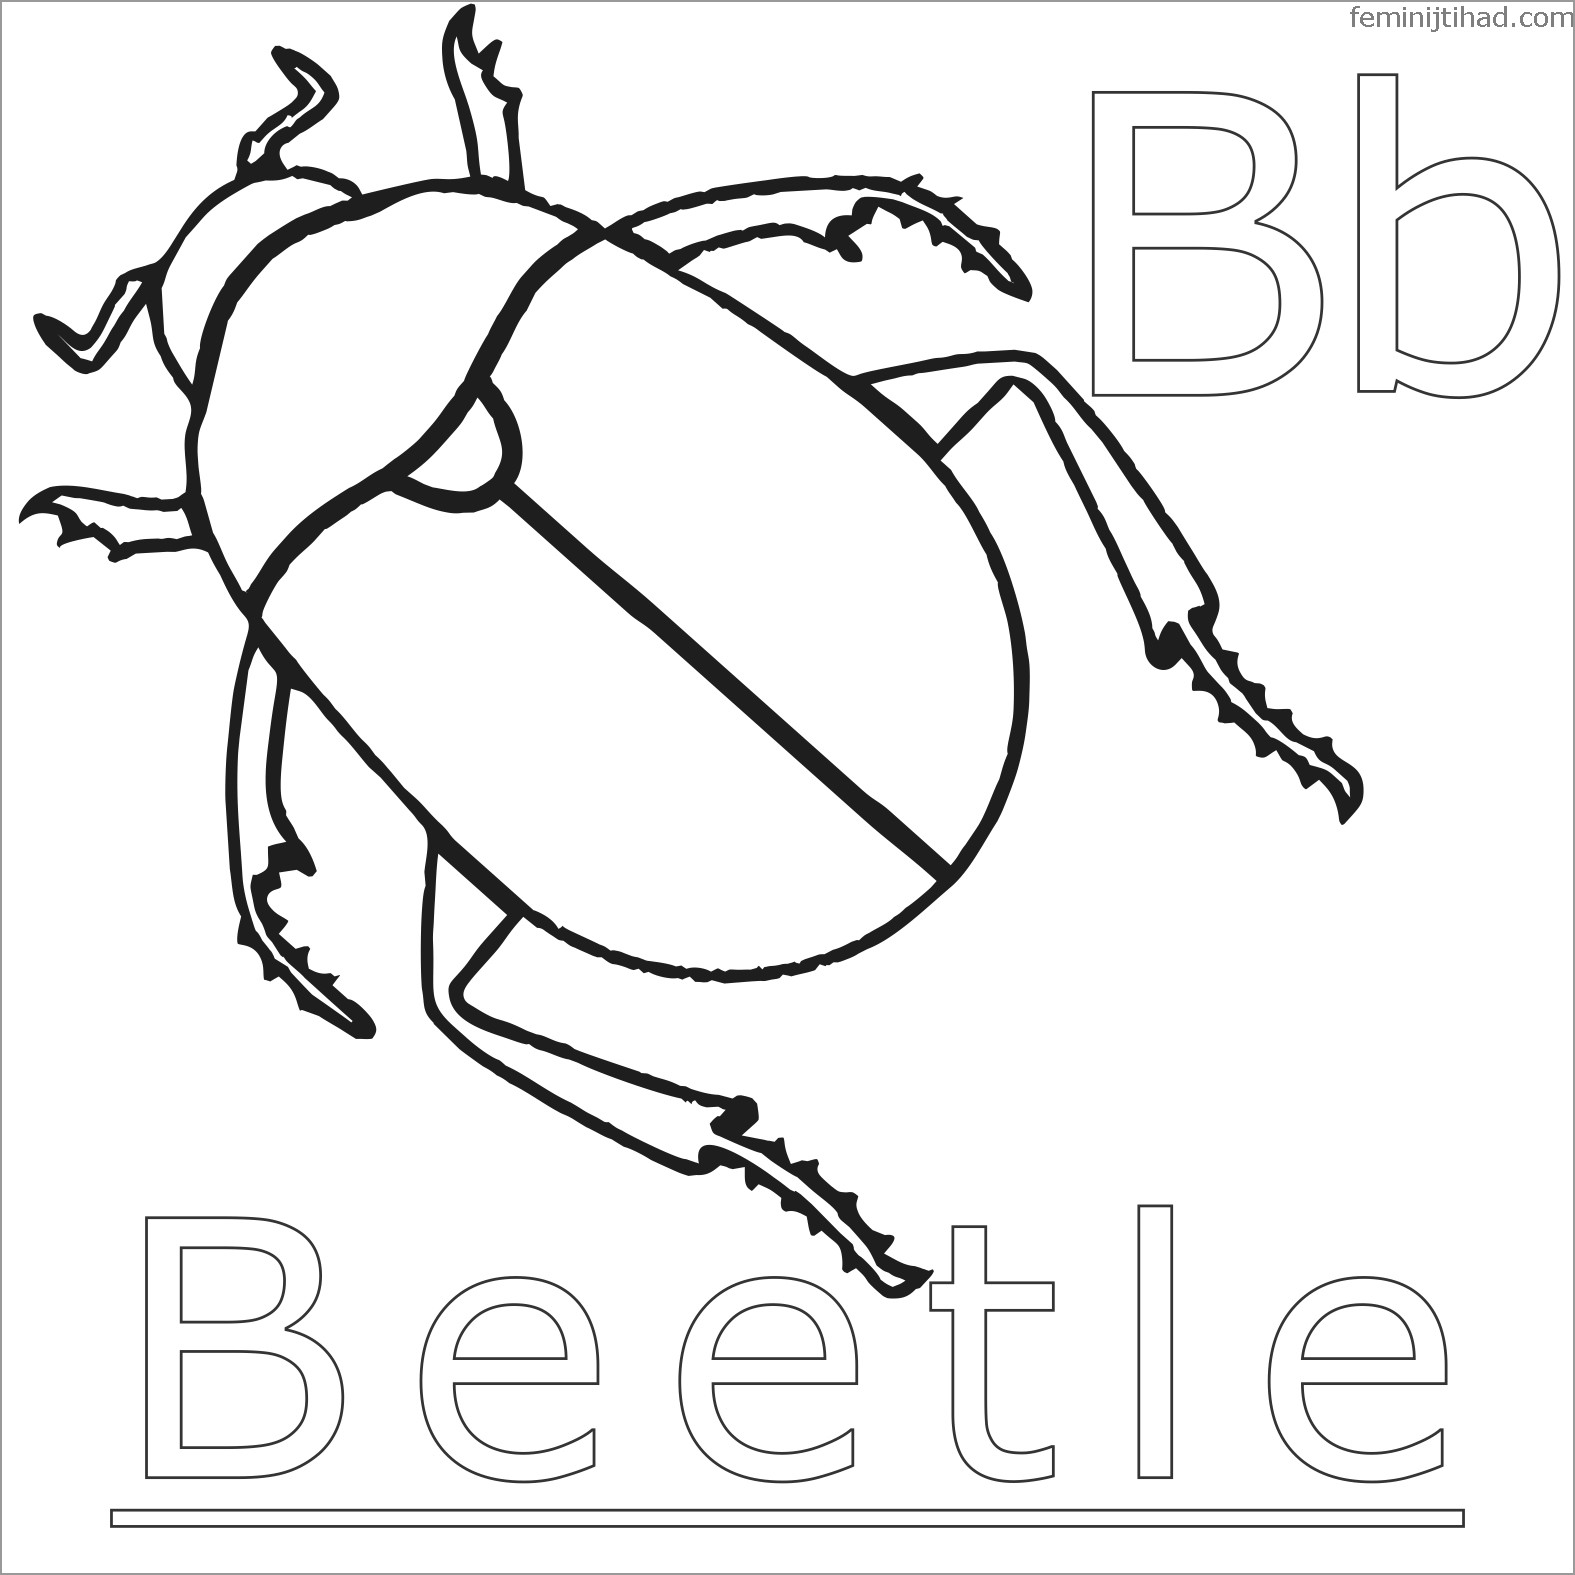 B for Beetle Coloring Page